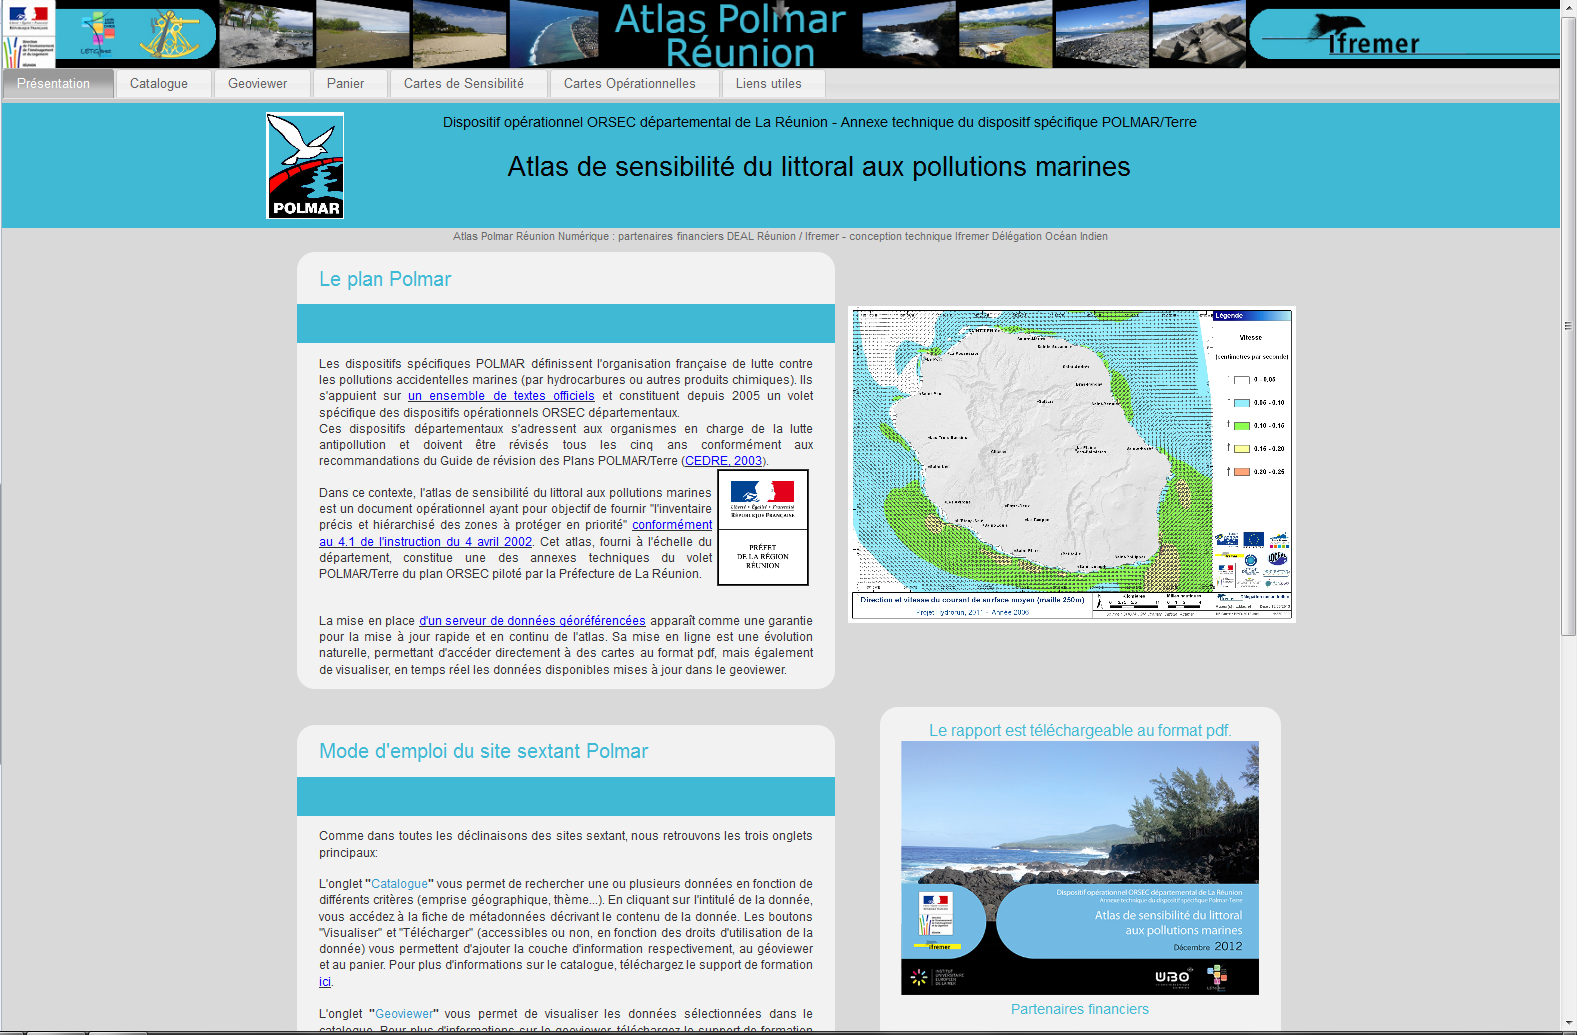 Atlas of coastal sensitivity to marine pollution: Polmar La Réunion